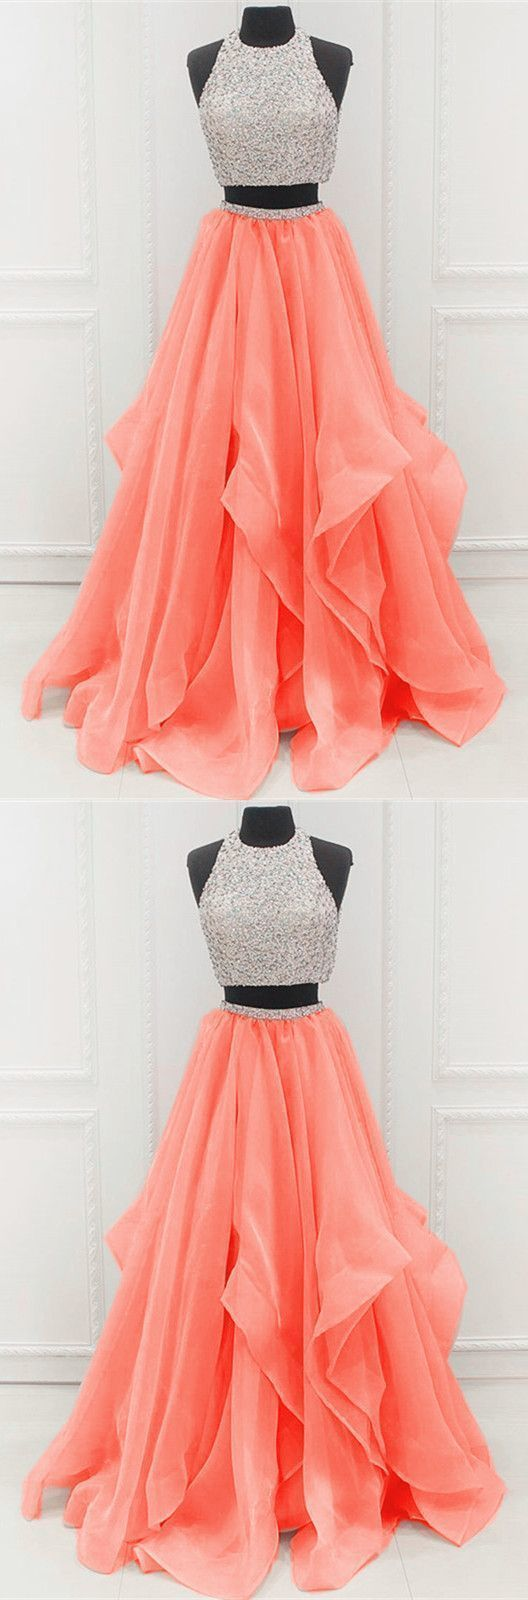 Prom Dress Ball Gown, two piece a line beaded tulle 2019 Unique Prom Dresses SuZhou Prom